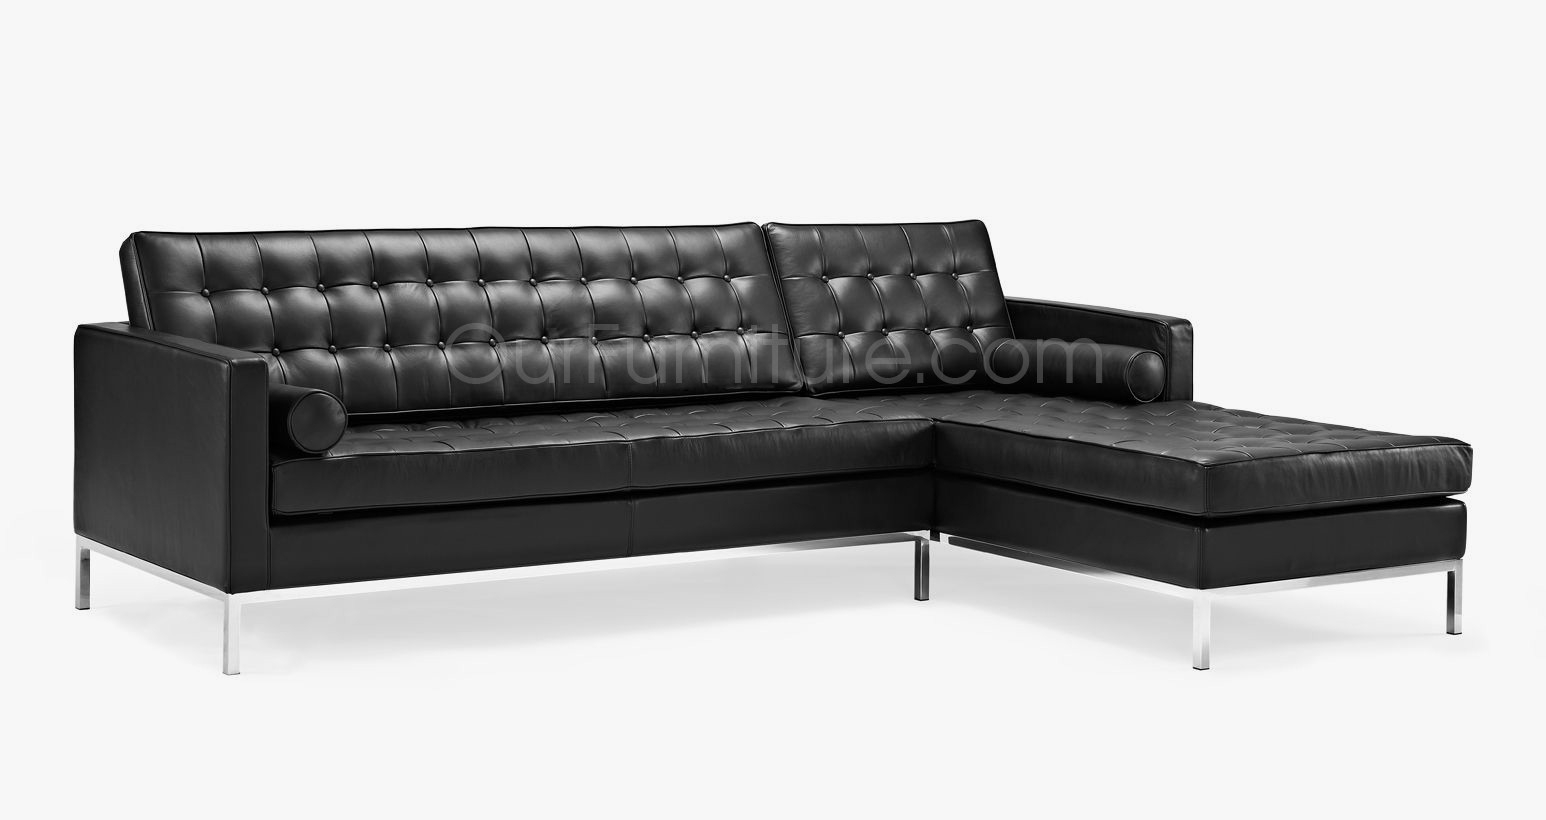 Florence Knoll Style Corner Sofa Pertaining To Florence Knoll Style Sofas (View 15 of 15)